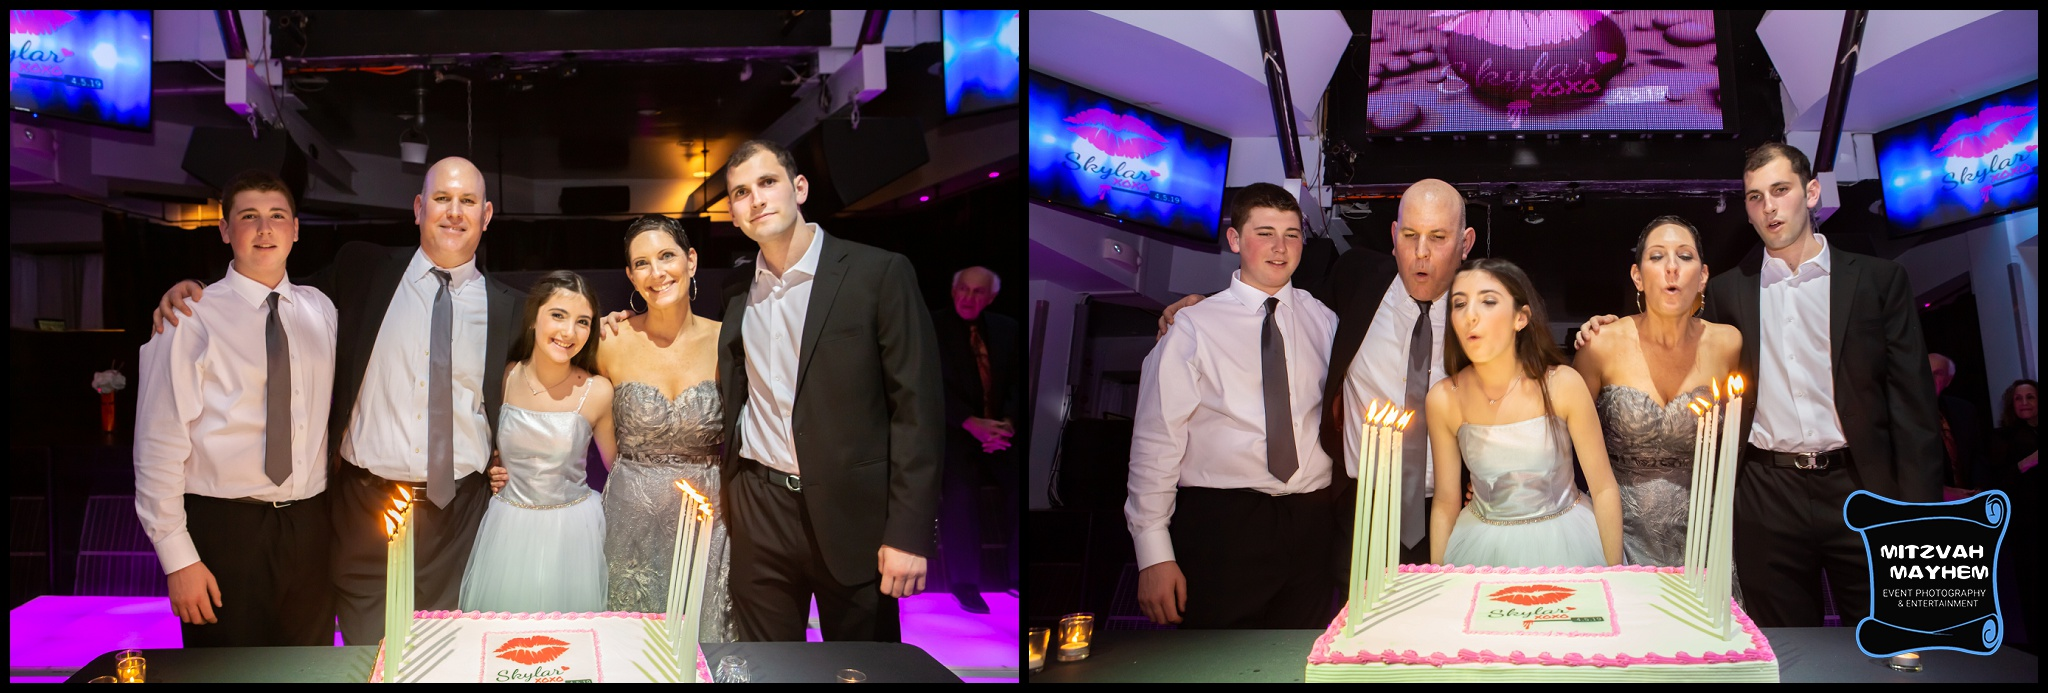 4Sixty6-Caterers-nj-bat-mitzvah-photographer-skylar-24.JPG